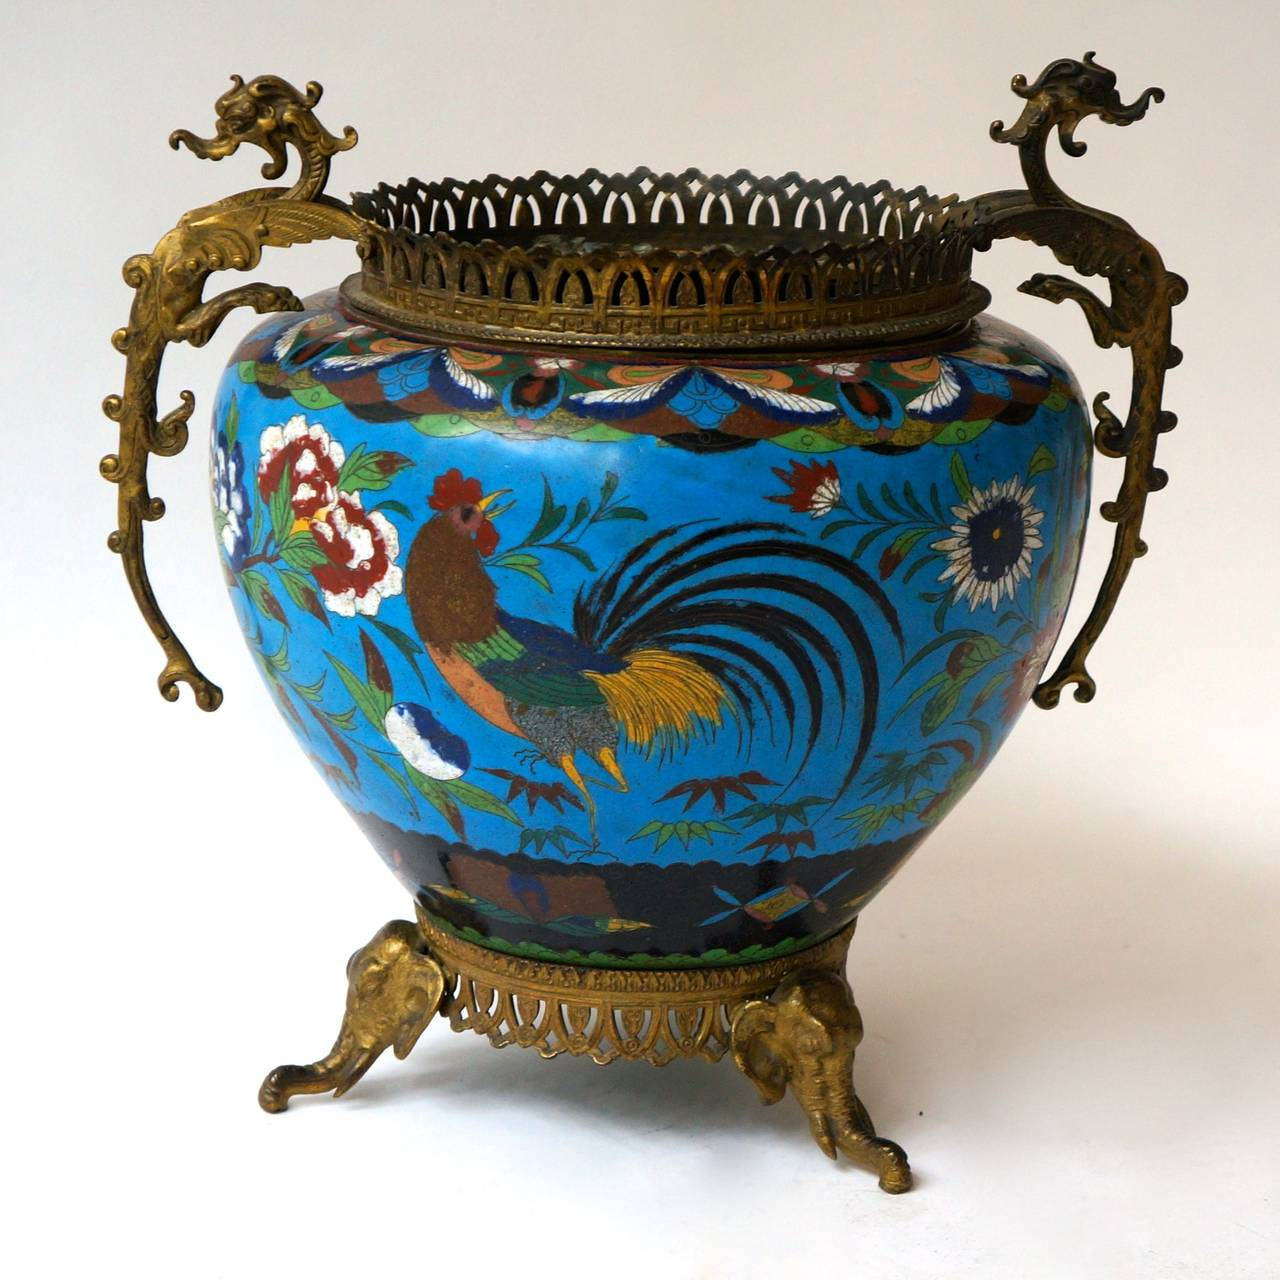 A large cloisonné´ jardinière or planter pot or bowl.